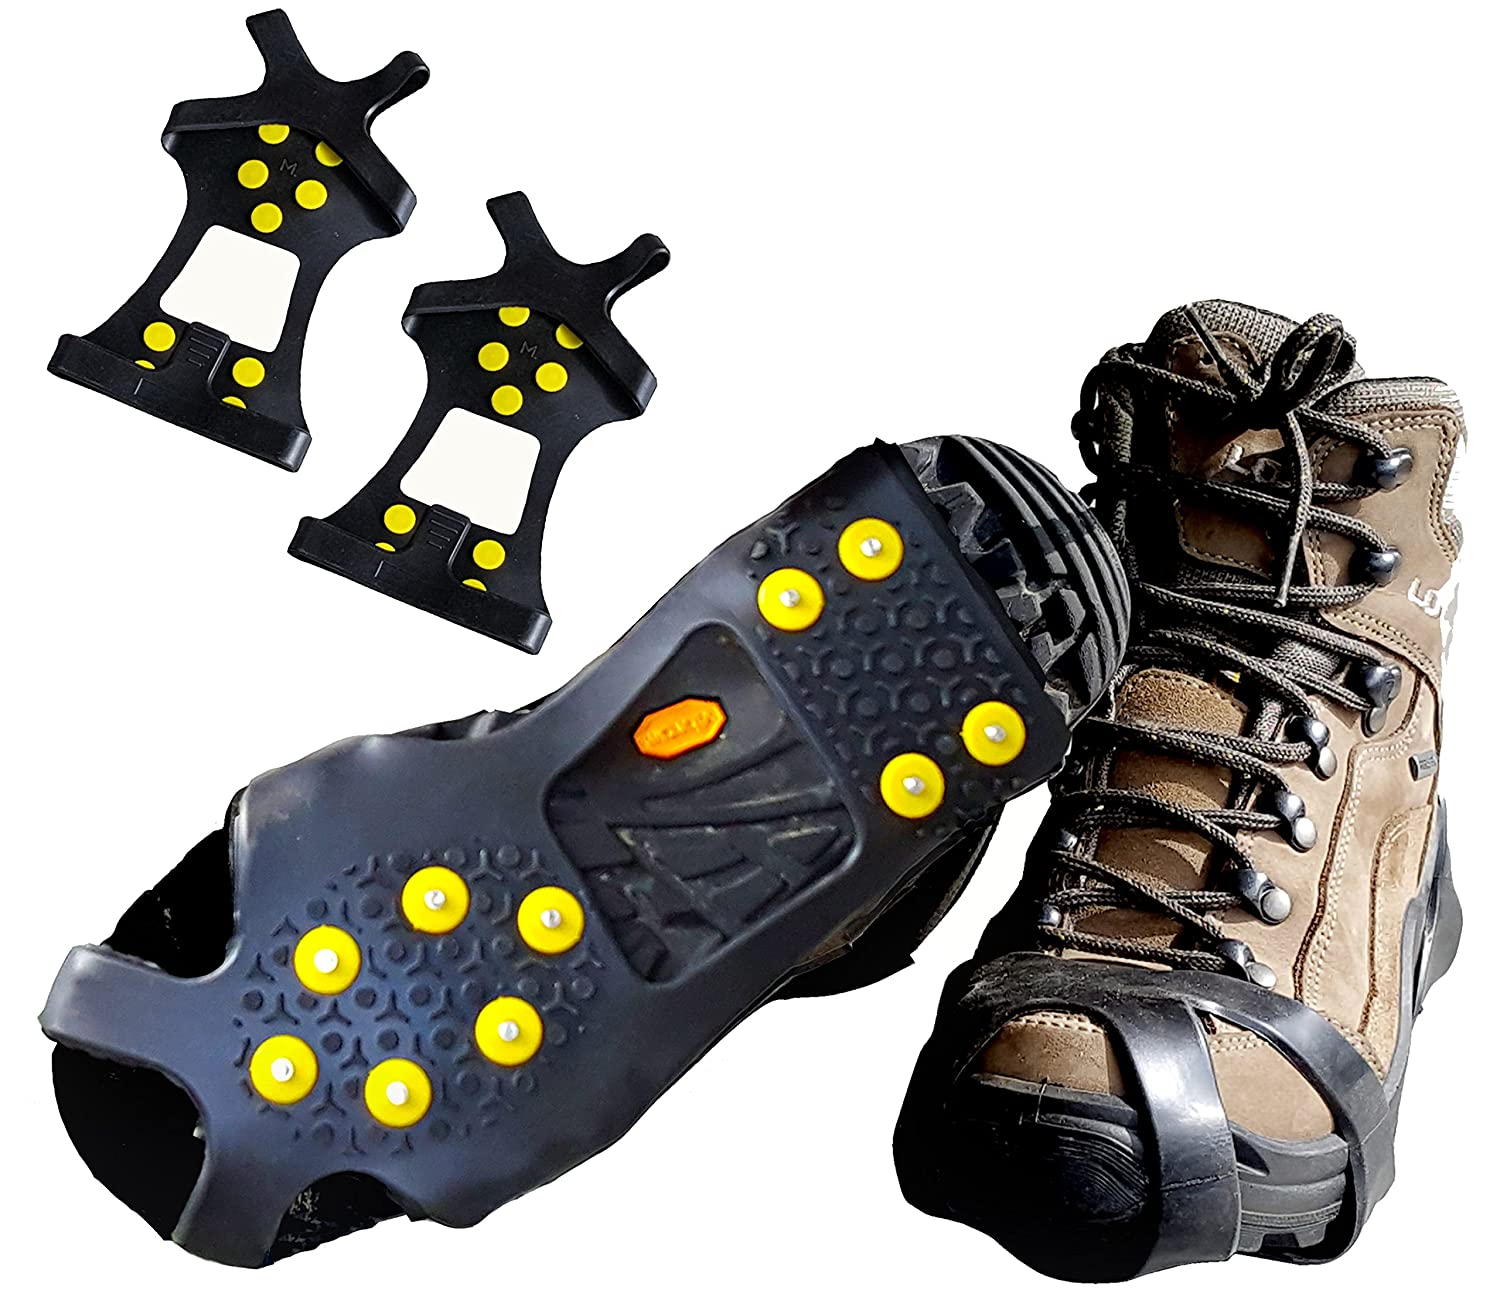 Limm Ice Traction Cleats Pro Grips Quickly and Easily Over Footwear for Snow and Ice Portable Sizes S M L XL